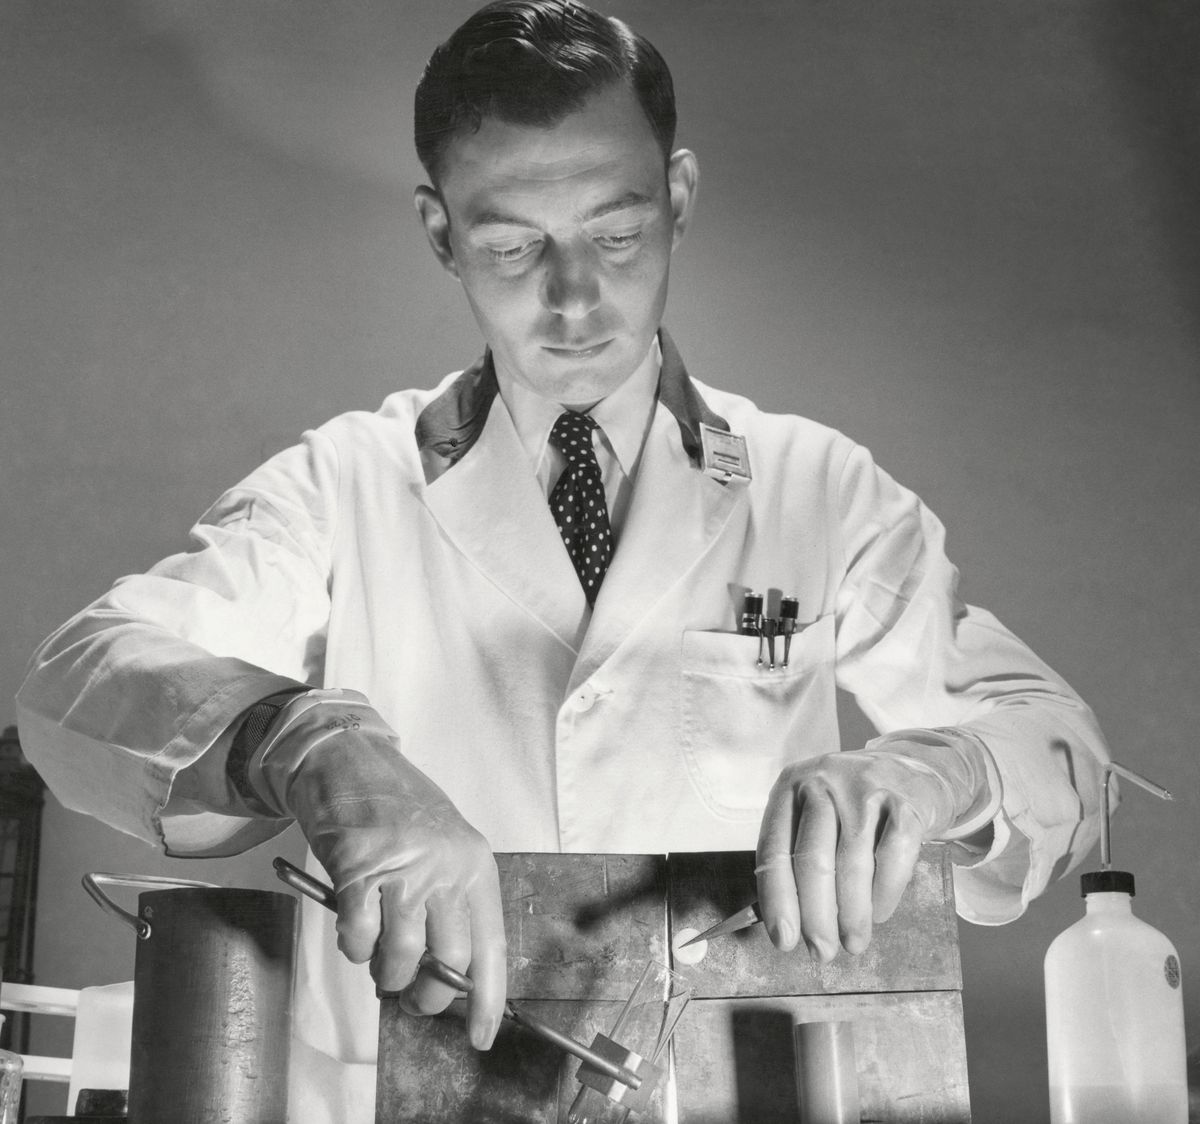 A man in a lab coat uses tongs to take a substance out of a test tube held behind a shield.